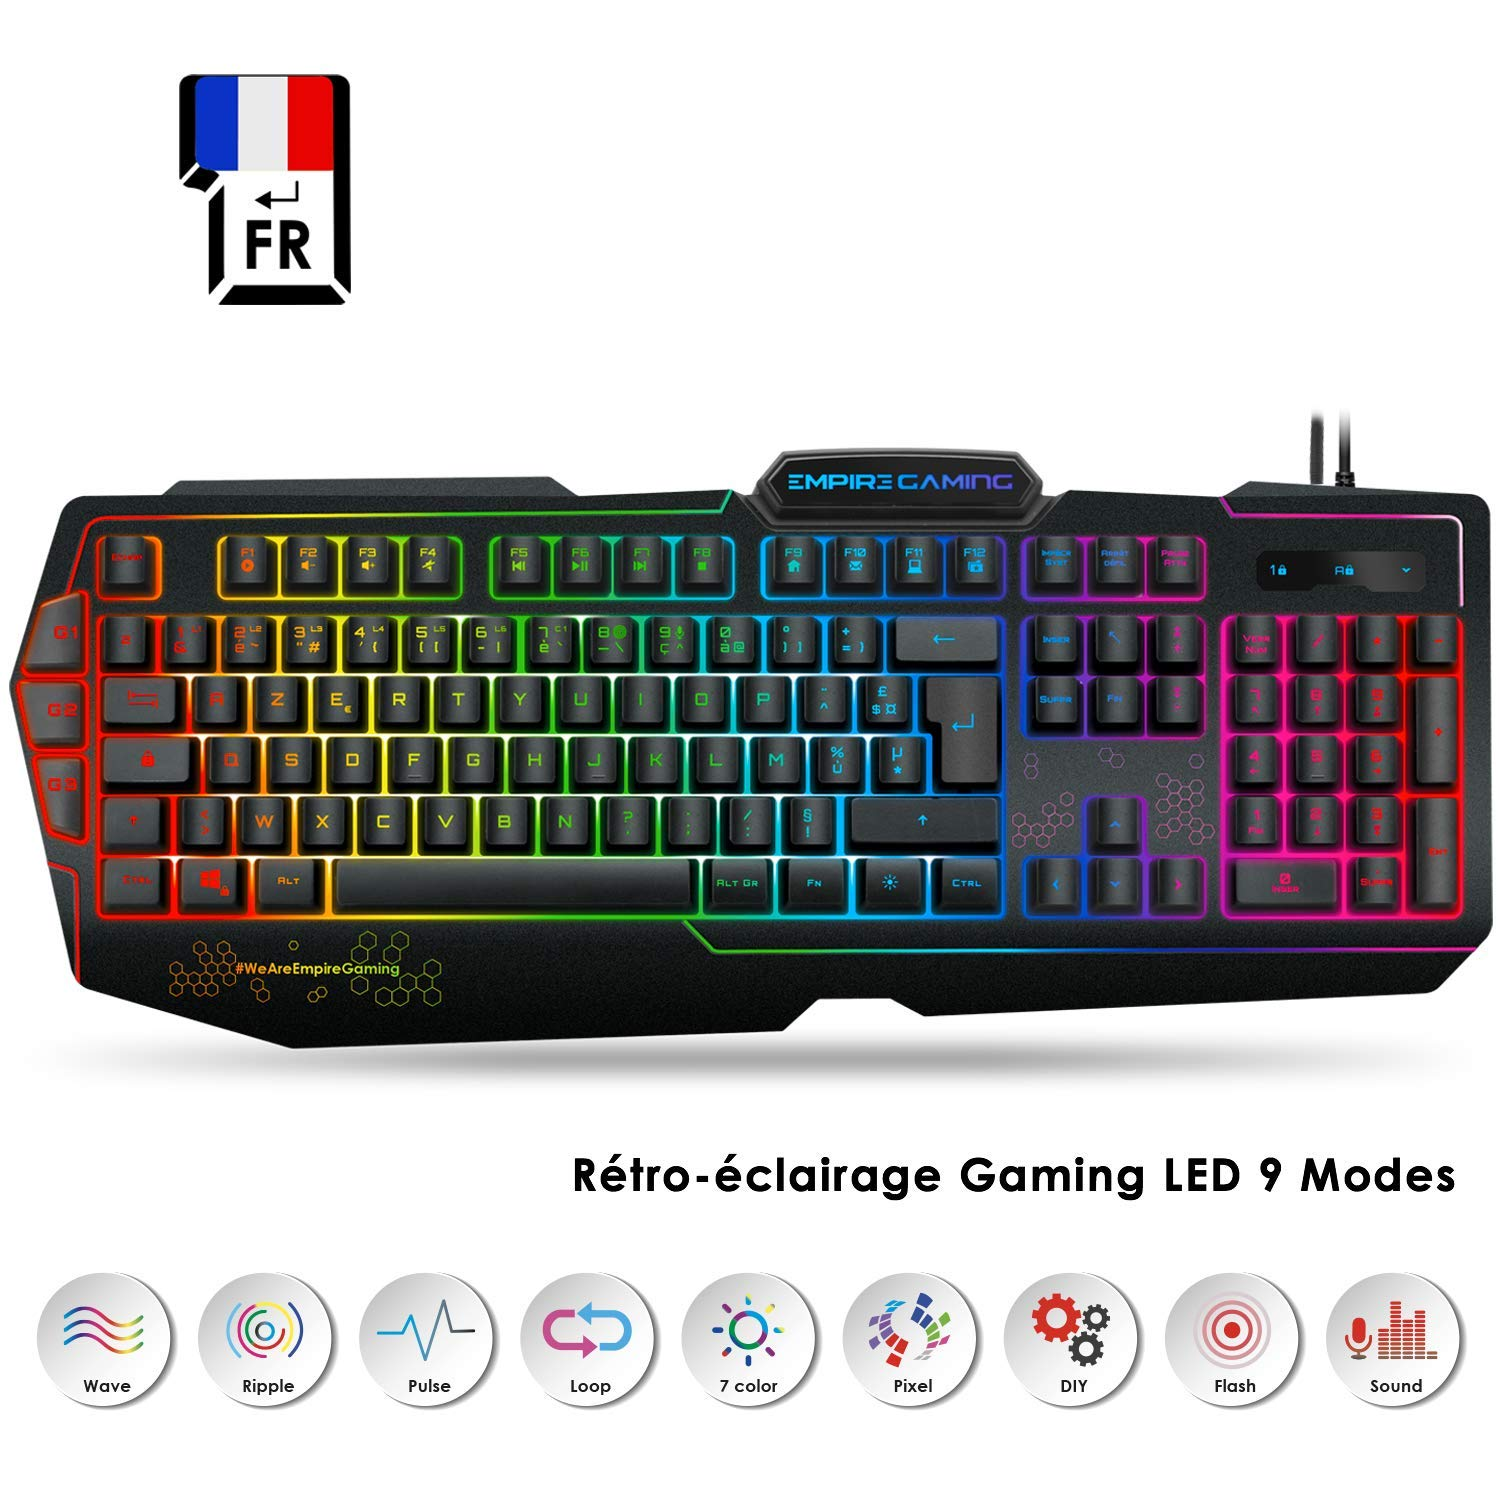 EMPIRE GAMING - Clavier Gamers K900 - Touches Semi-mécaniques- Retro-éclairage LED RGB 9 Modes Dont 1 Personnalisable - 19 Touches Anti-ghosting - 3 macros programmables pour PC Gamer product image